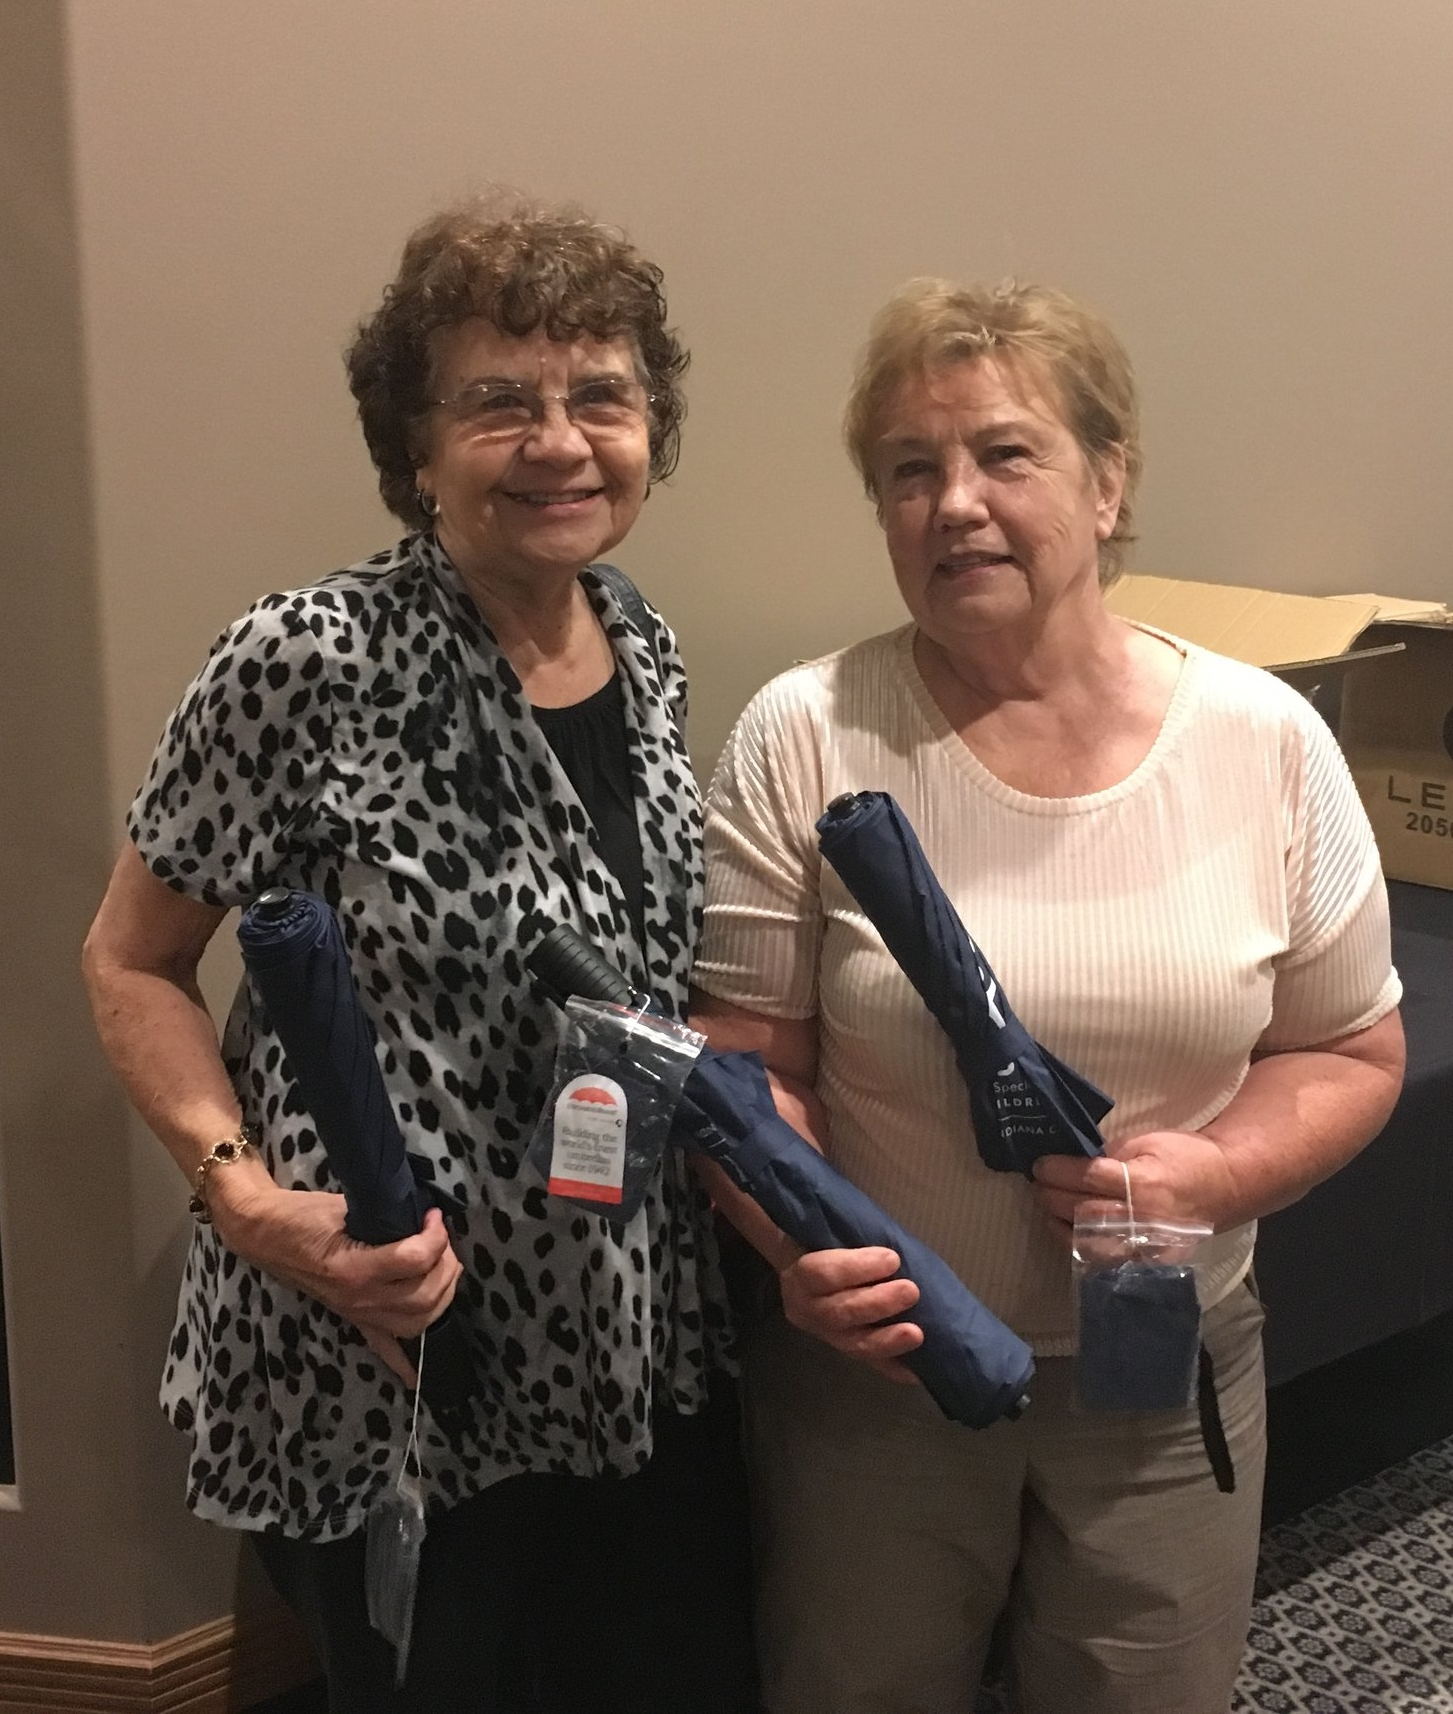 Pictured right, Myrlee works with other CASA volunteers to pass out appreciation gifts at a recent banquet honoring volunteers, board members and staff.